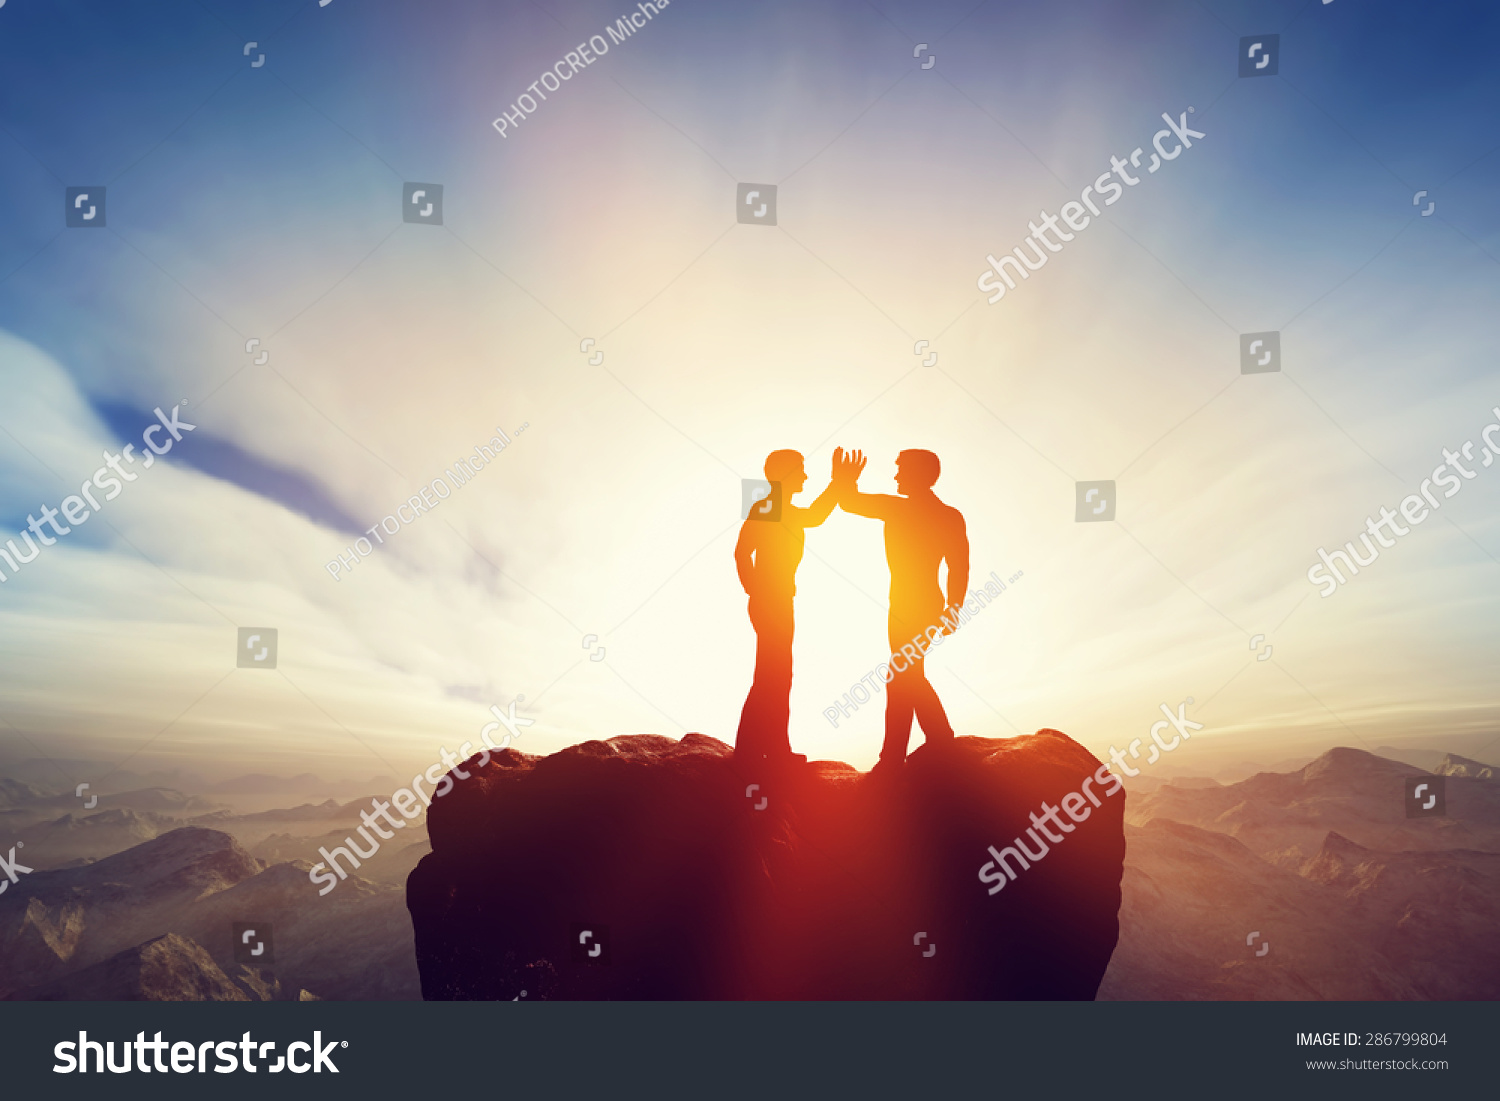 Two Men Friends High Five On Stock Illustration 286799804 Shutterstock